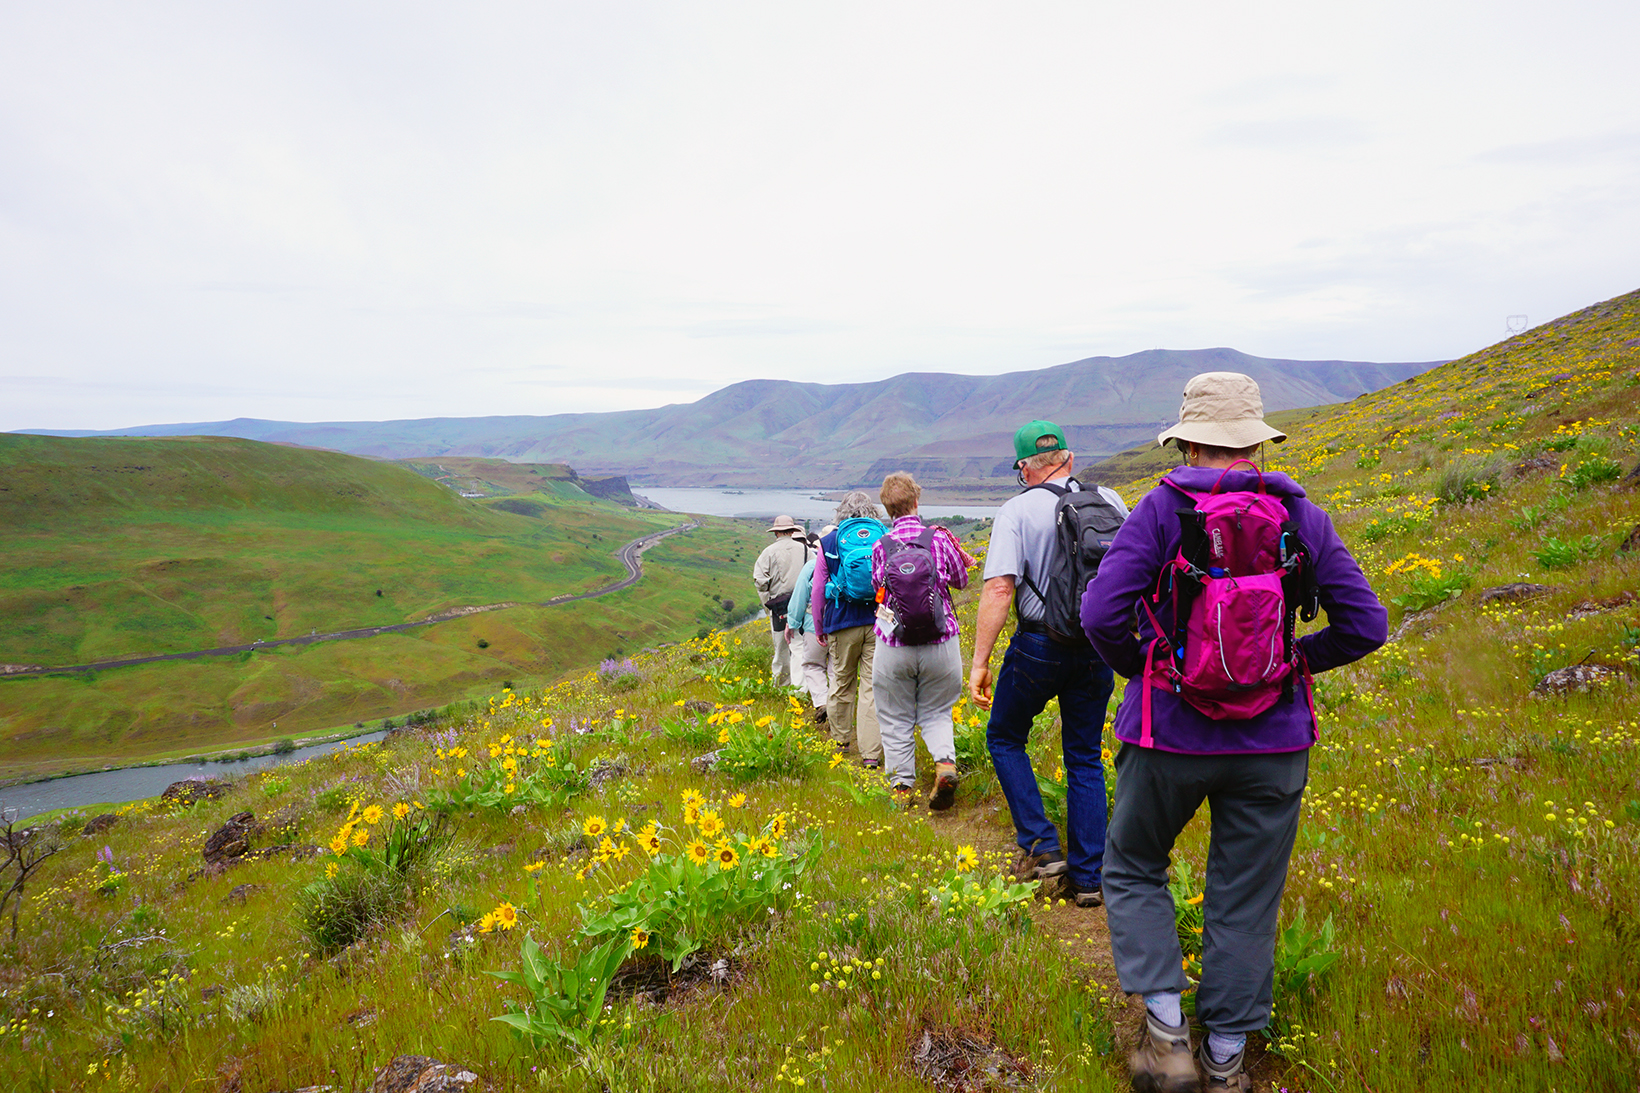 Hikers get a great view of the Gorge on the Deschutes River Trail